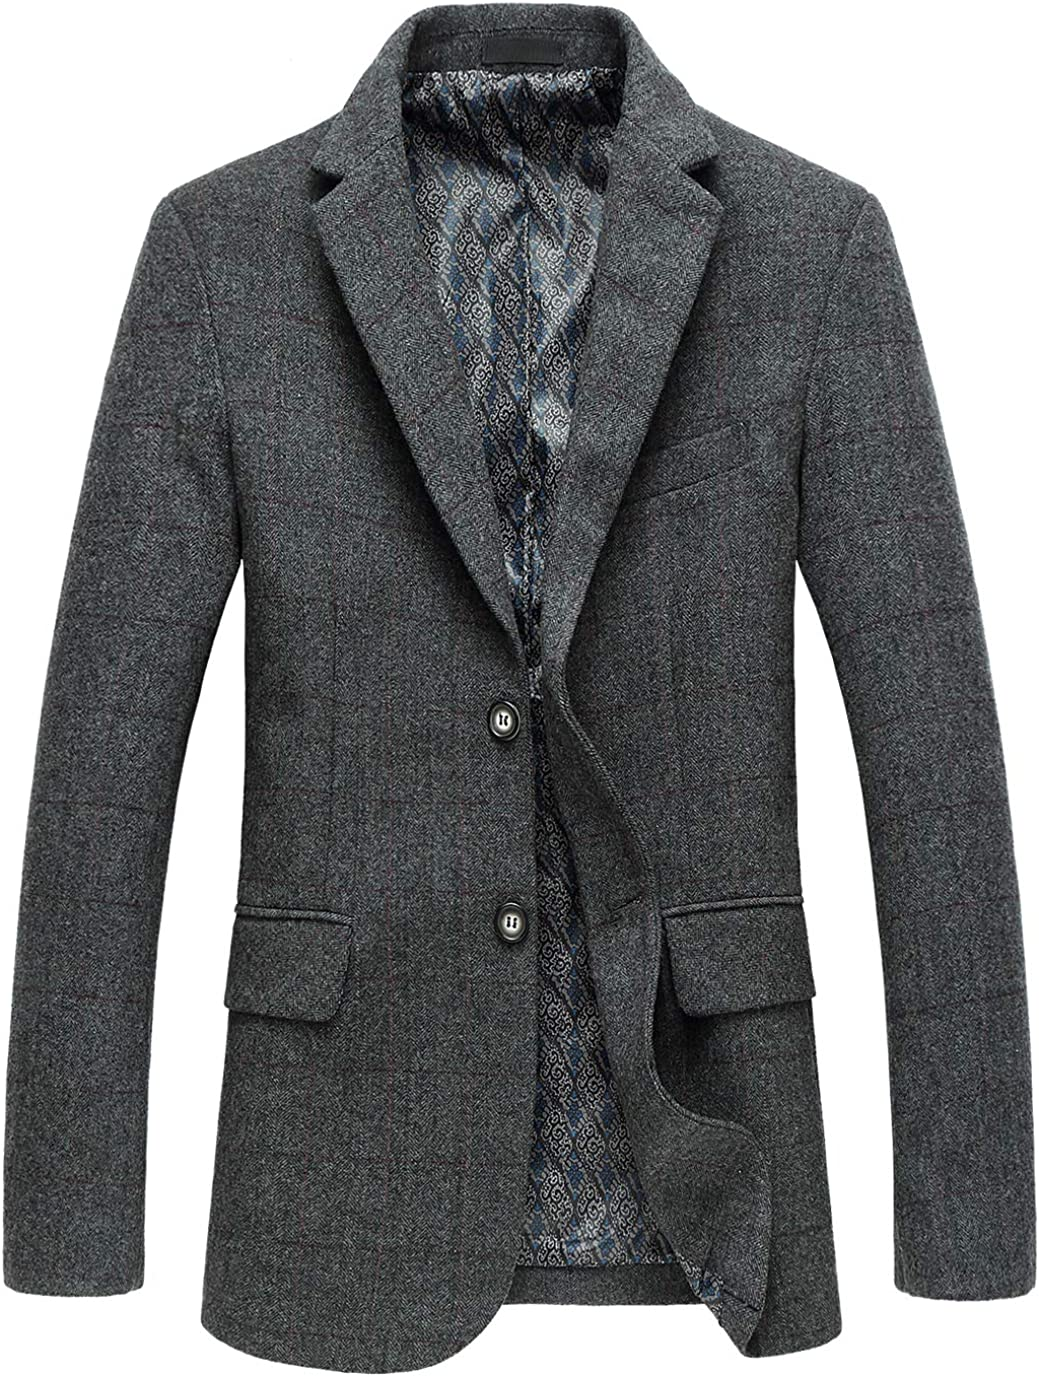 chouyatou Men's Classic Plaid Two-Button Wool Blend Tailored Suit Separate Coat